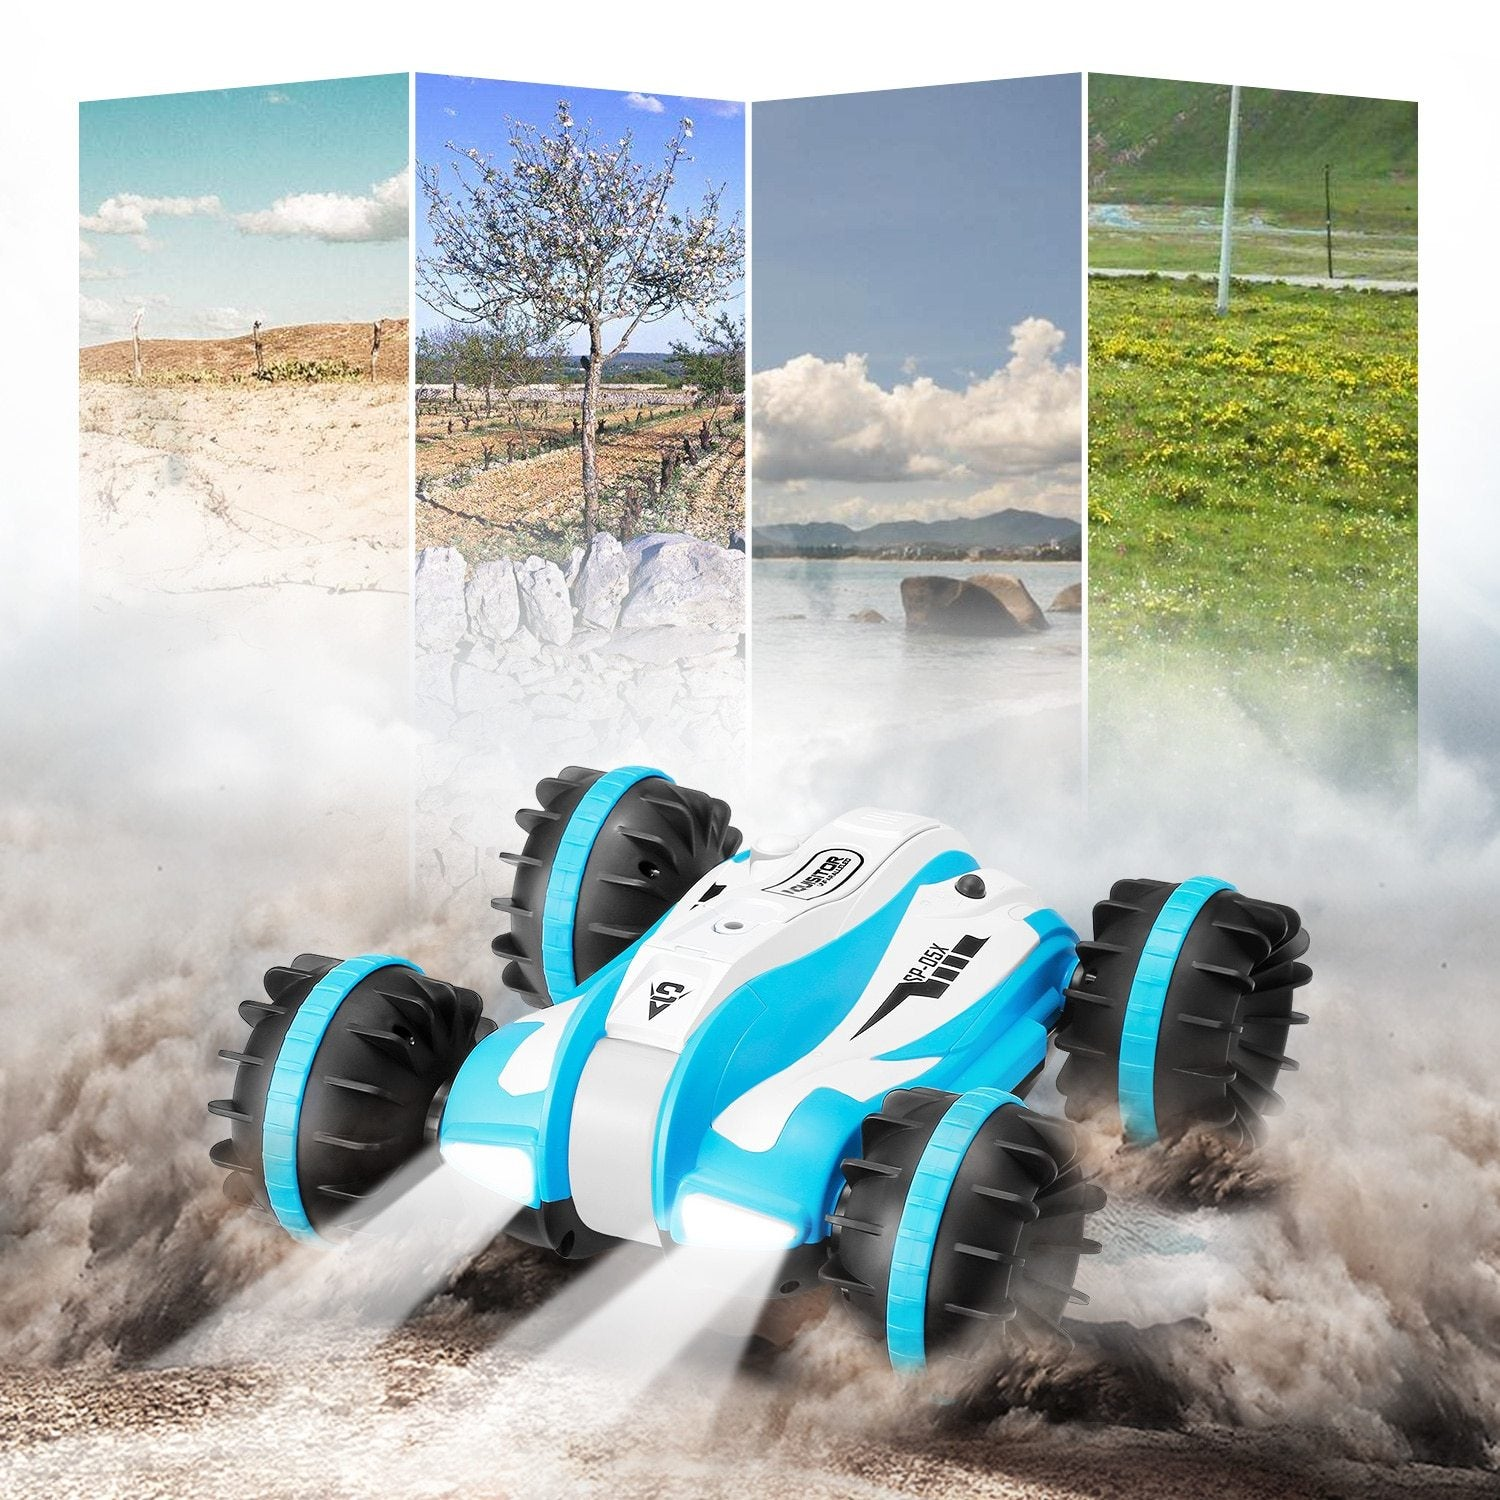 2.4GHz RC Car 6-Channel 1:12 Scale 360-Degree Rotation Stunt RC Car